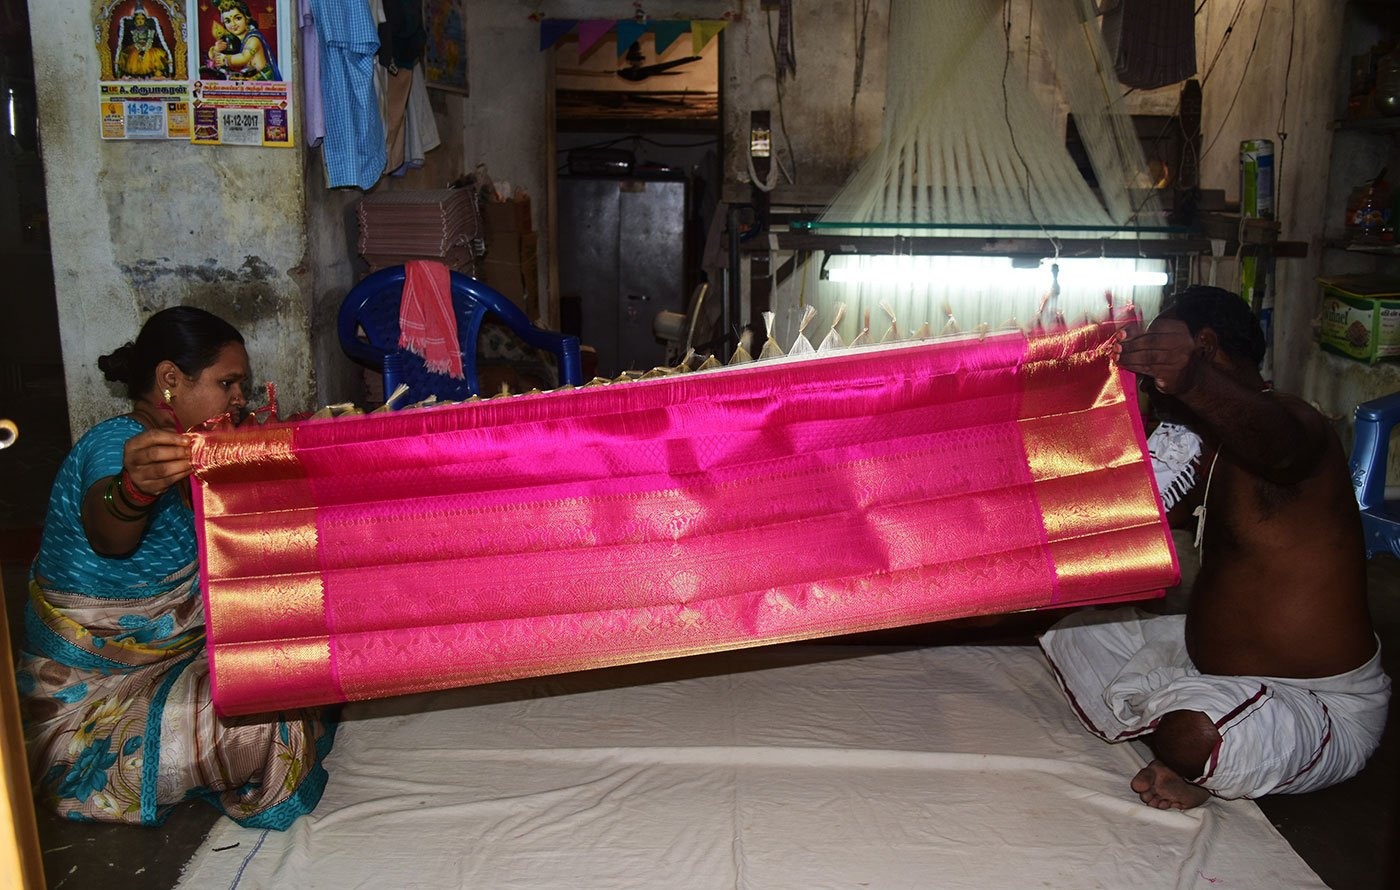 Devasenathipathi Kothandapani (another weaver by same name) and his wife Gomathi pack the finished saree into a box. The weavers have to deliver the neatly folded and boxed sarees to the cooperatives they are associated with